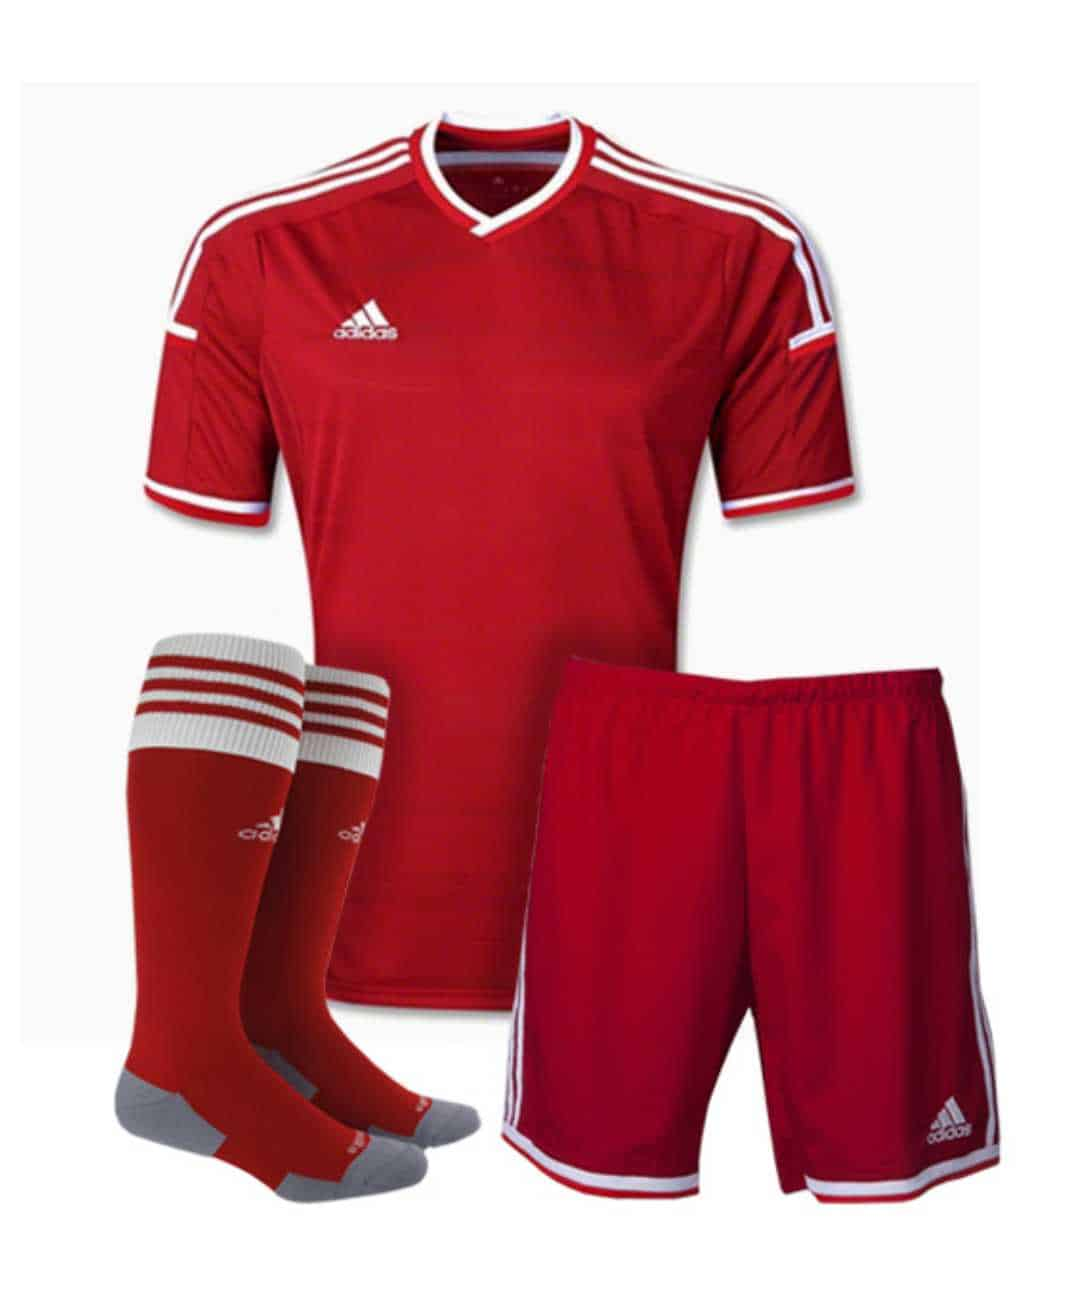 adidas Condivo 14 Soccer Uniform - TheTeamFactory.com - photo#5